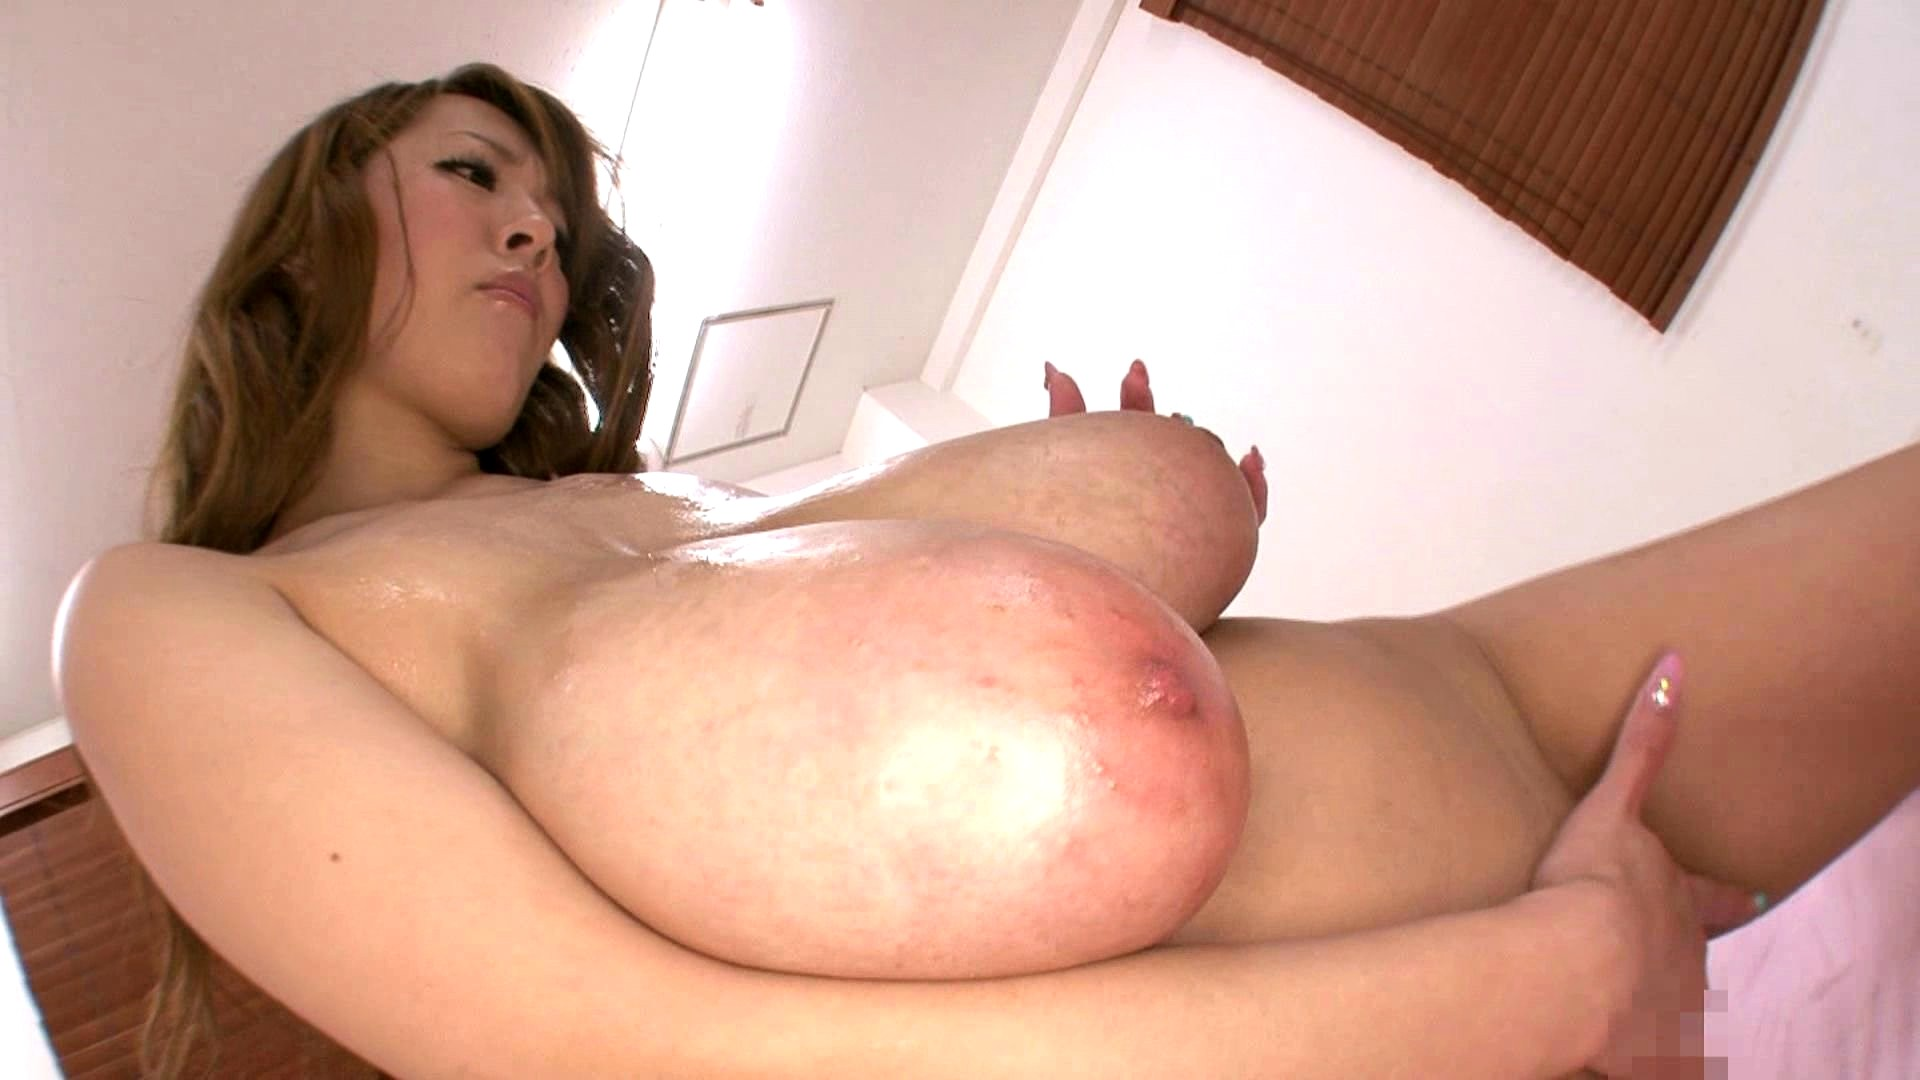 Opinion busty oiled asian girls share your